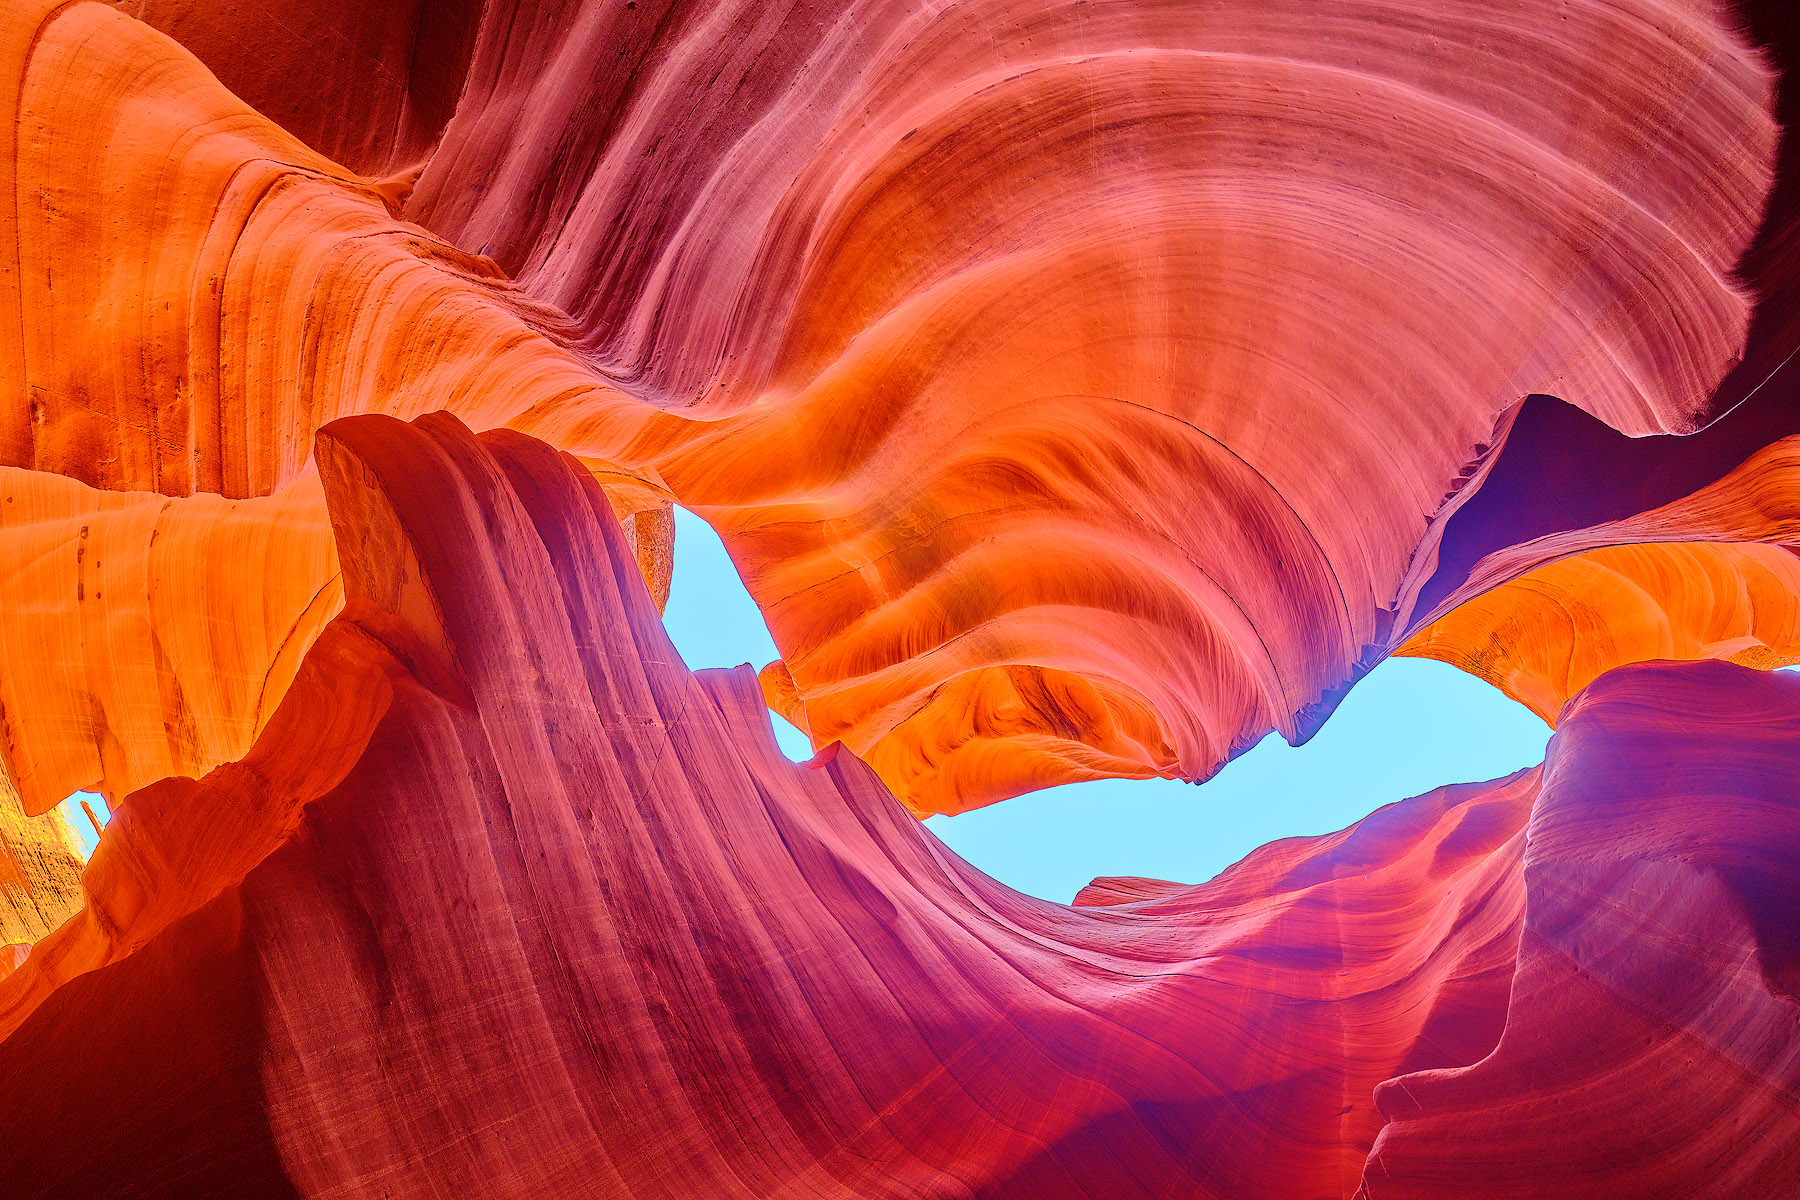 a fine art photograph from within lower antelope canyon in Arizona with orange, red, and purple colors. Fine art photography by Andrew Shoemaker